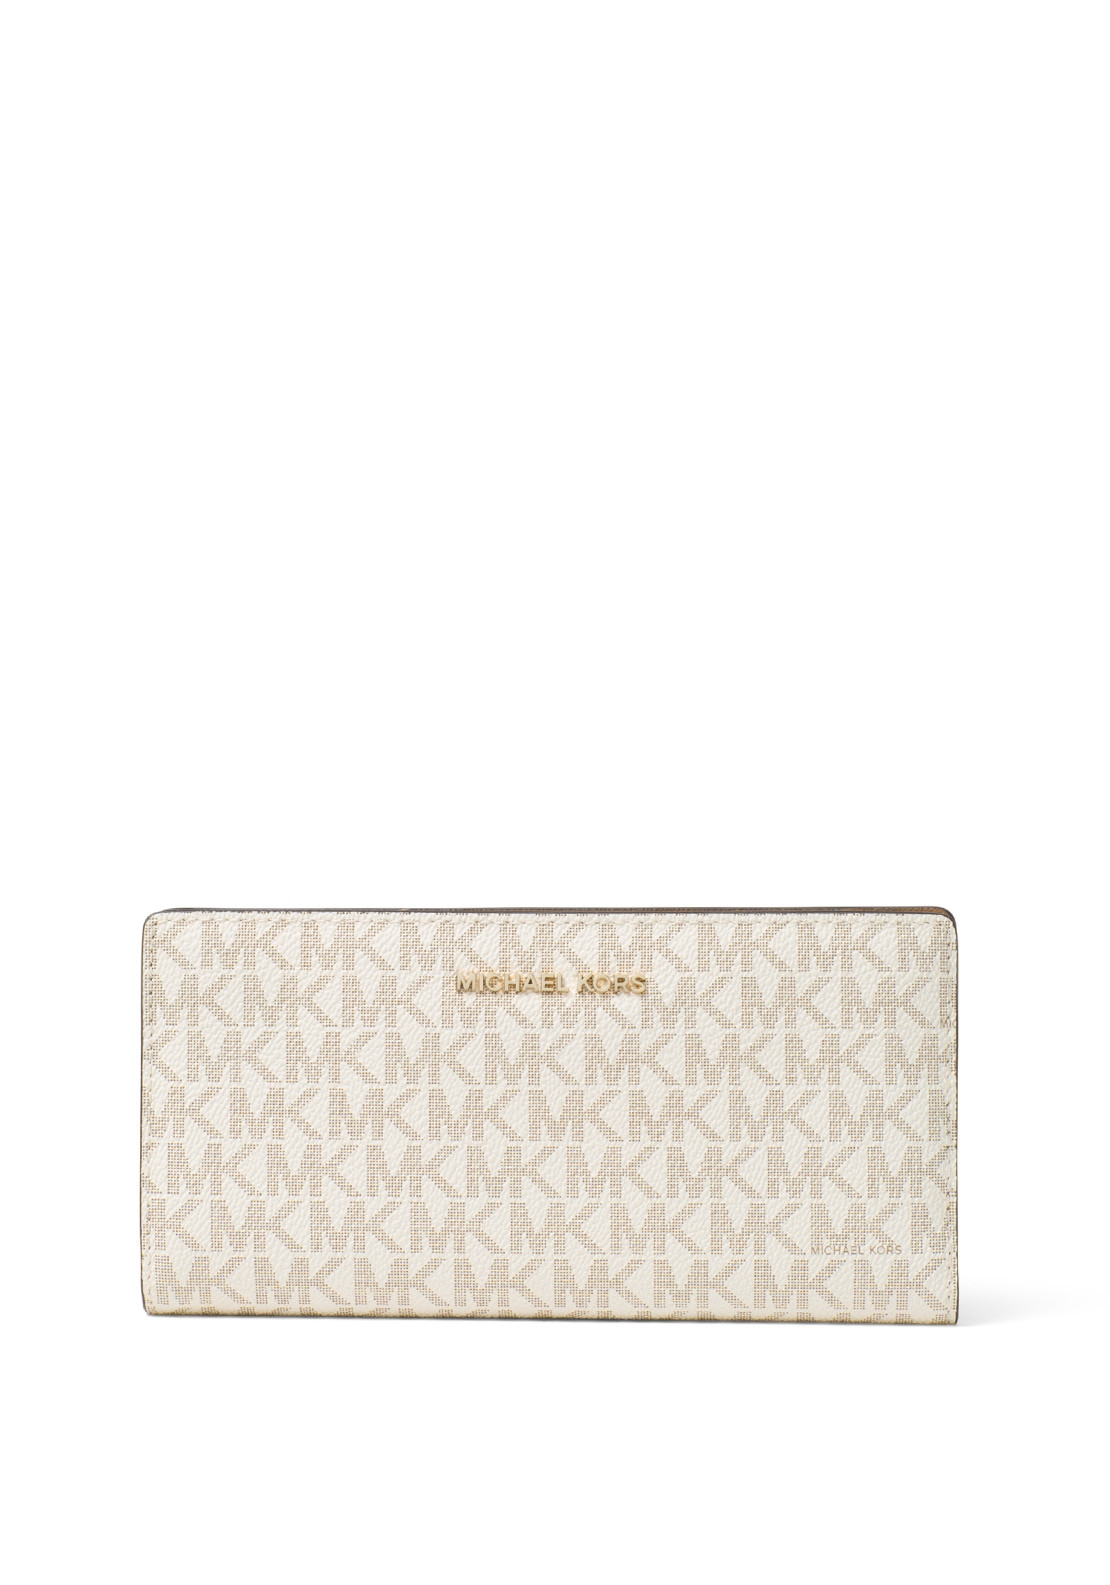 37e2aeef636e MICHAEL Michael Kors Slim Logo Wallet, Vanilla & Acorn. Be the first to  review this product